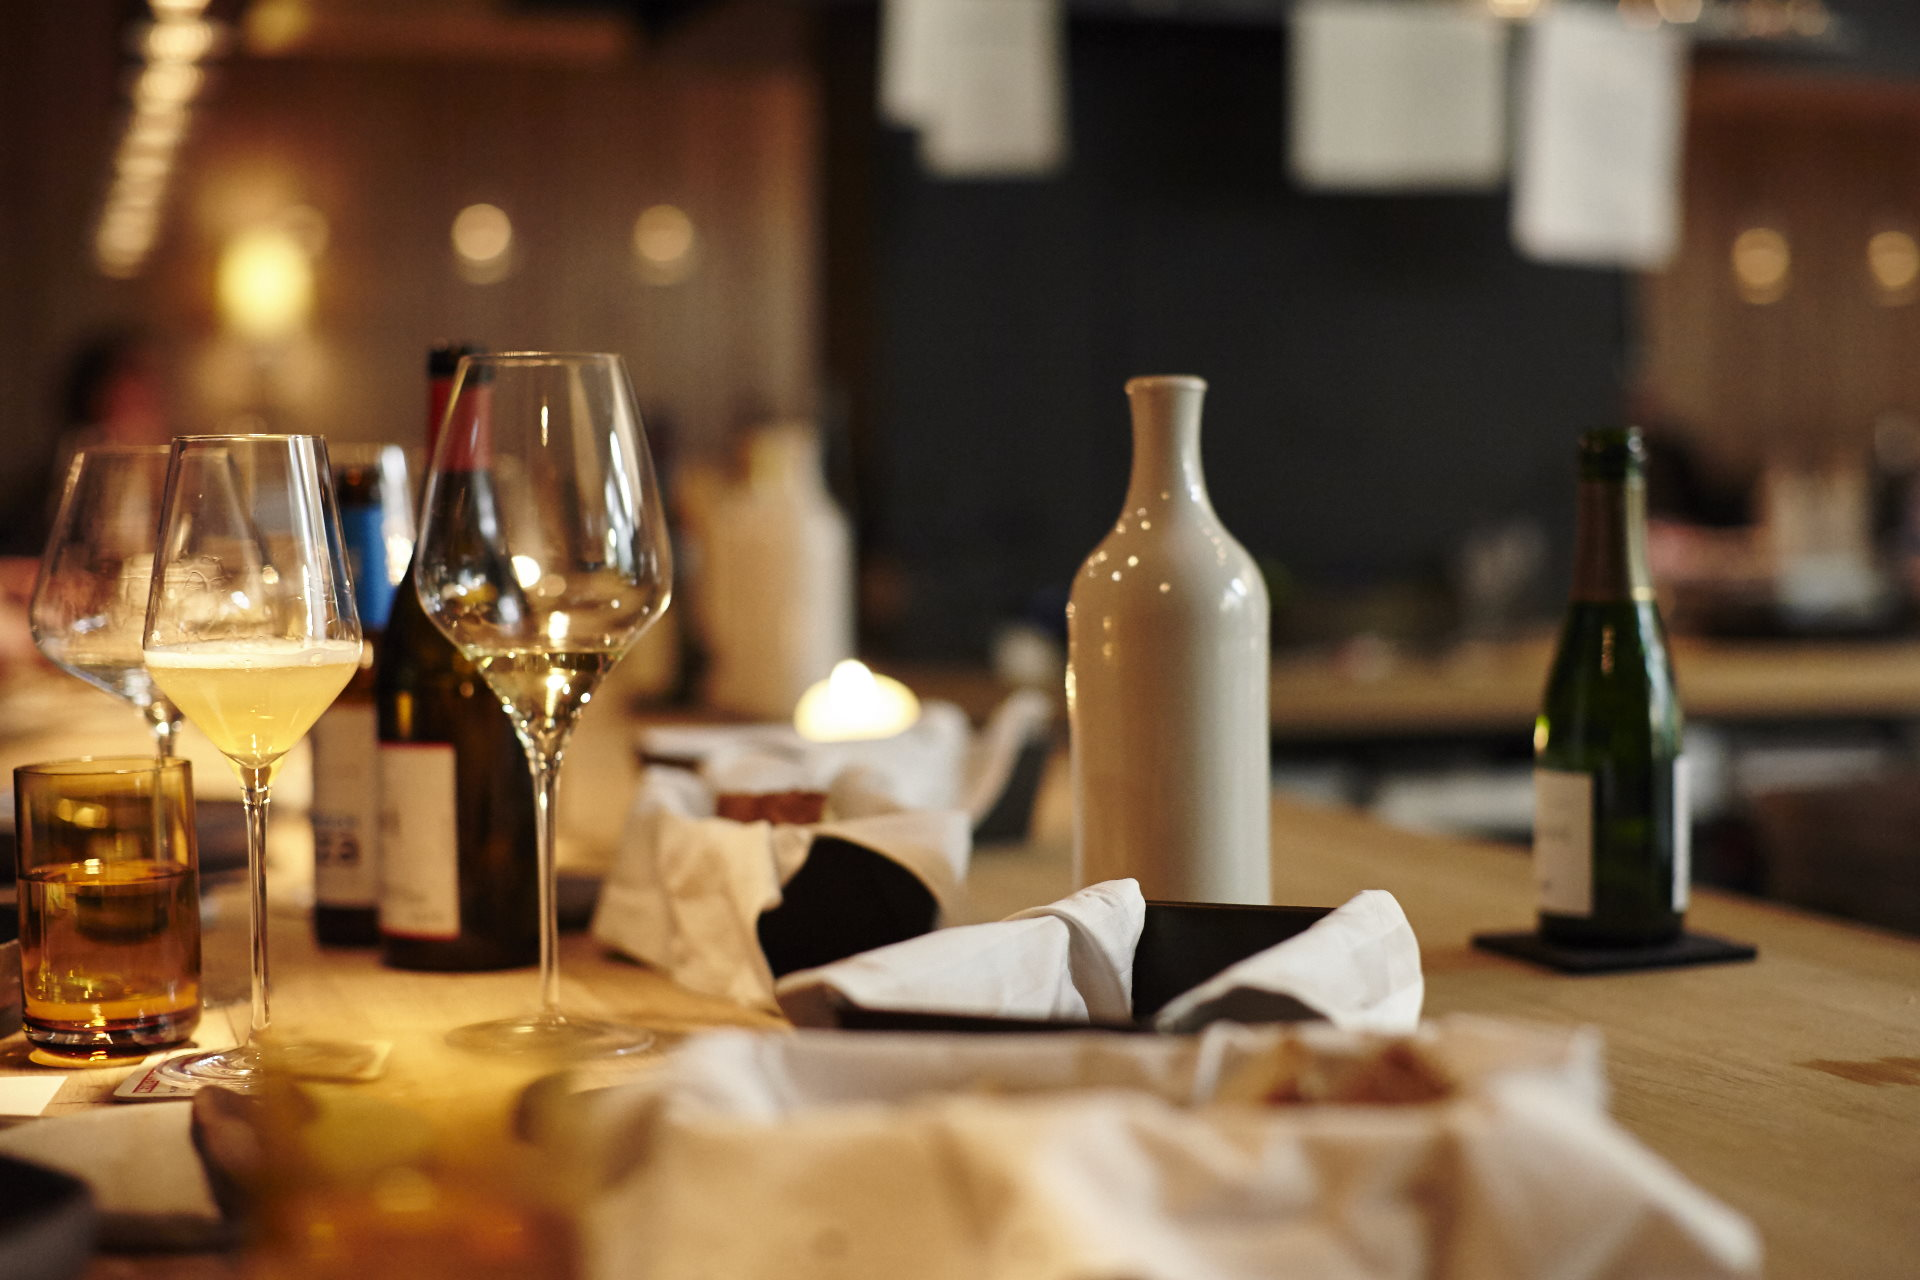 CoVid and Restaurant: some creative ideas